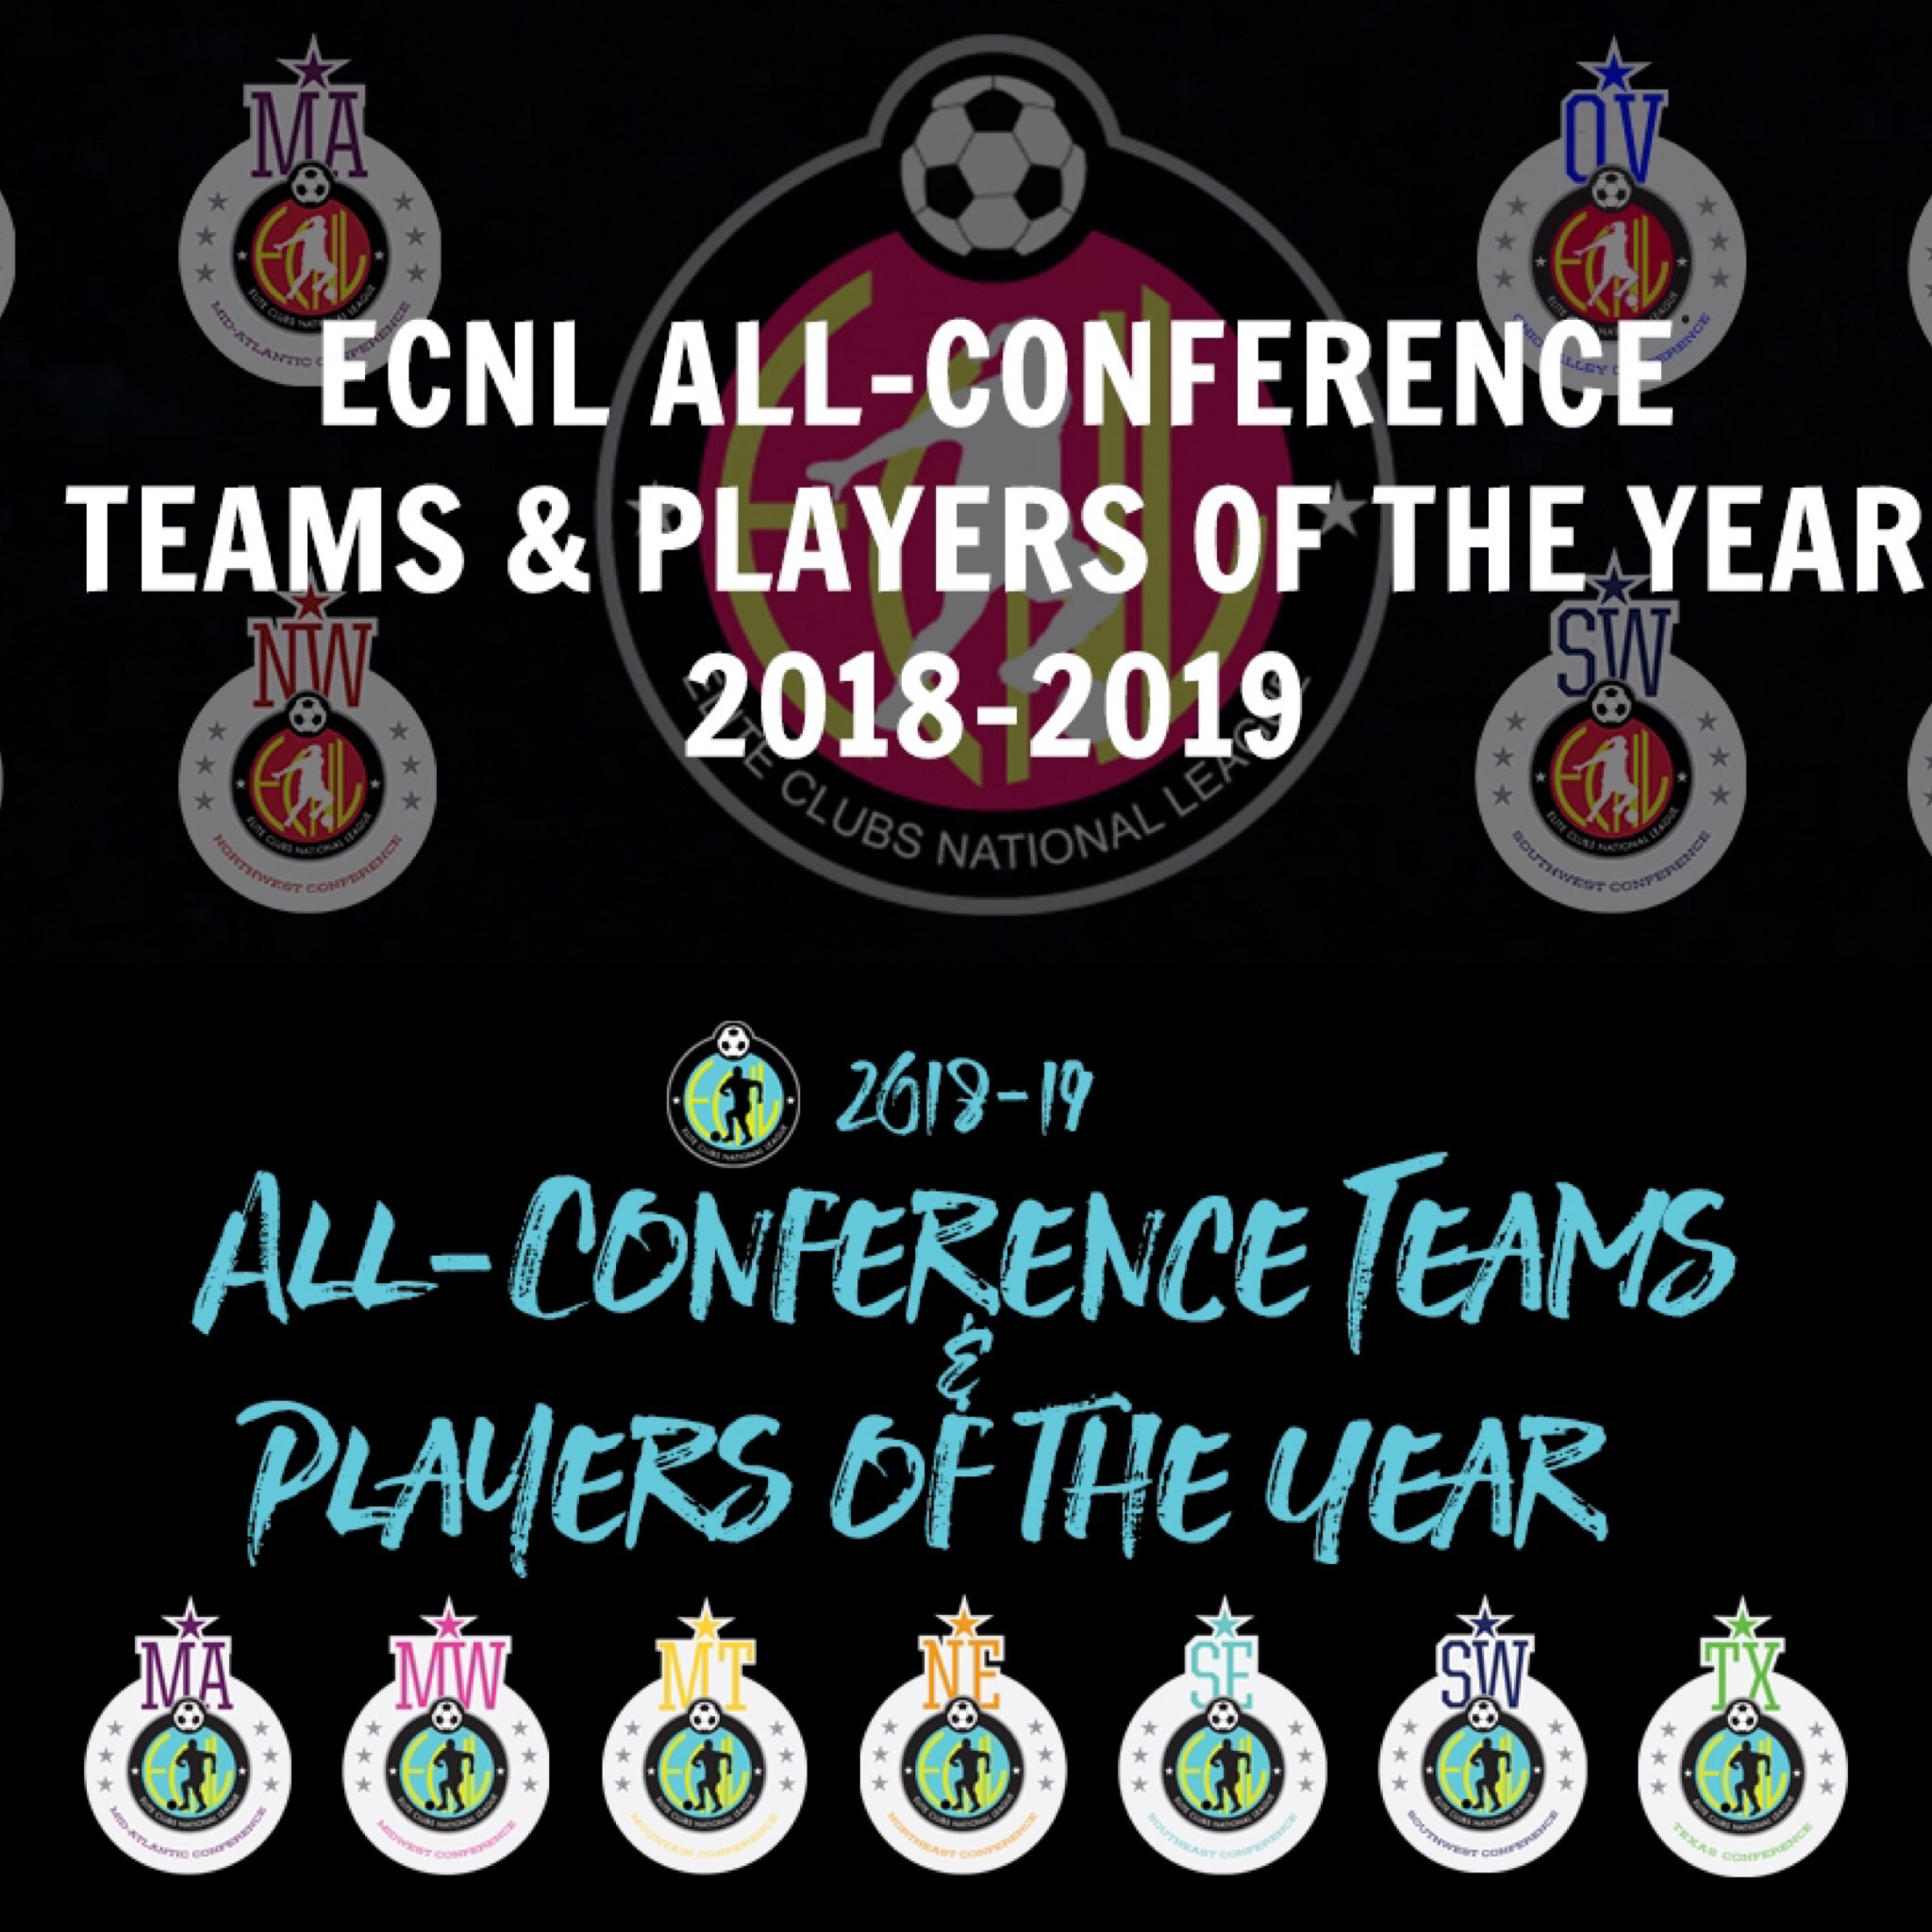 ECNL Players Earn National Recognition